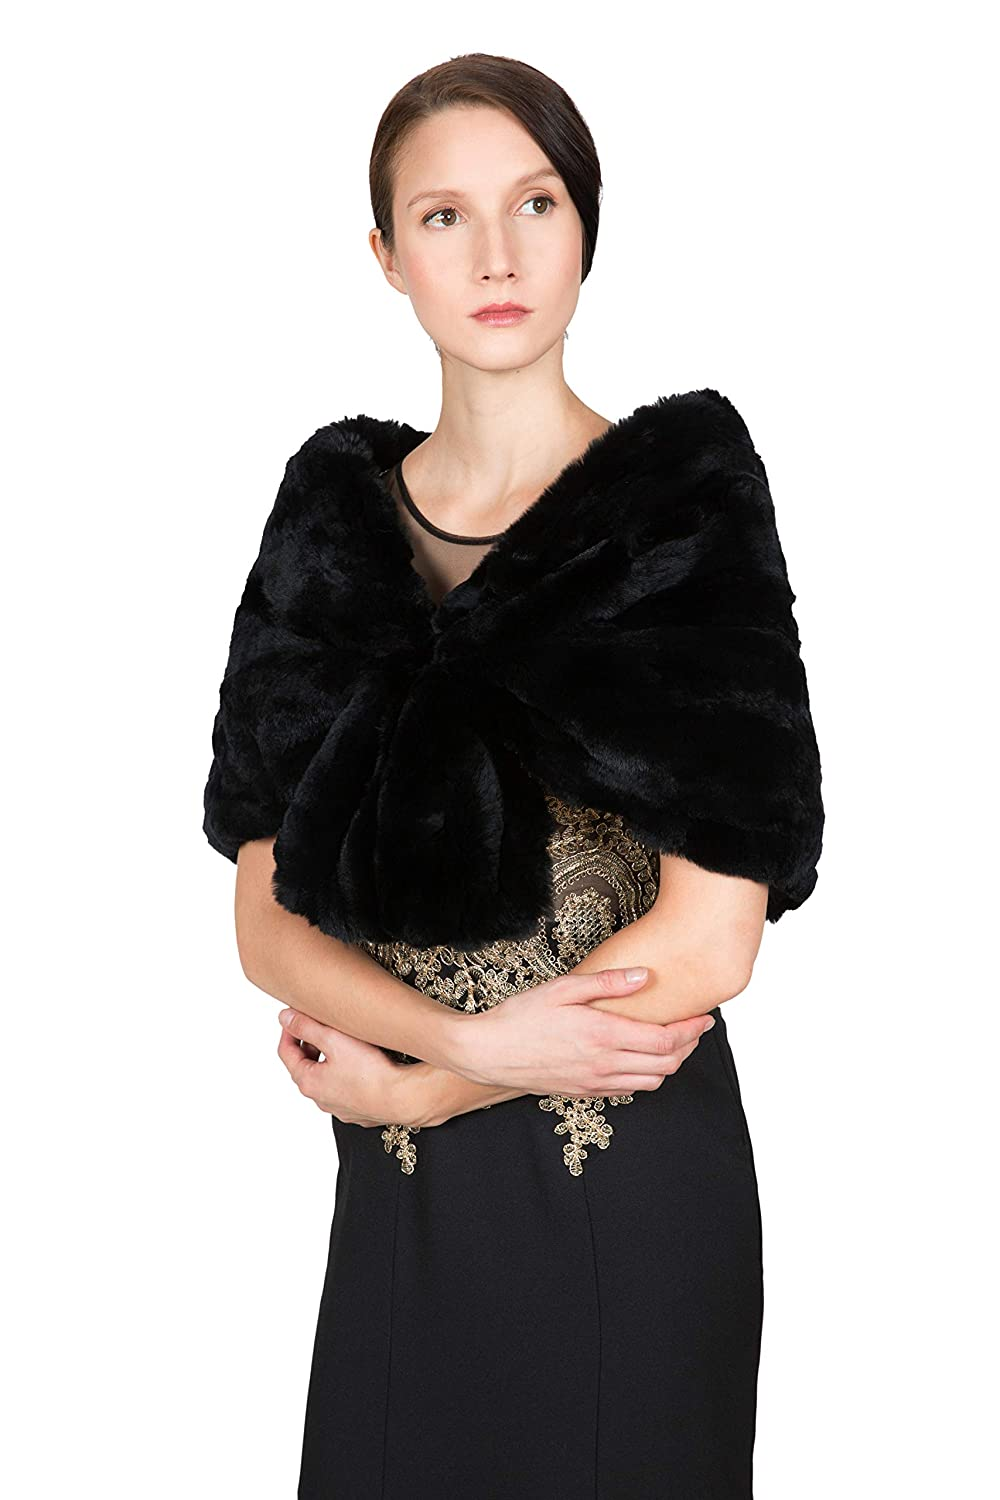 d4952934e OBURLA Women's Rex Rabbit Fur Cape with Collar | Soft and Luxurious Real Fur  Shawl Wrap Stole (Black) at Amazon Women's Clothing store: